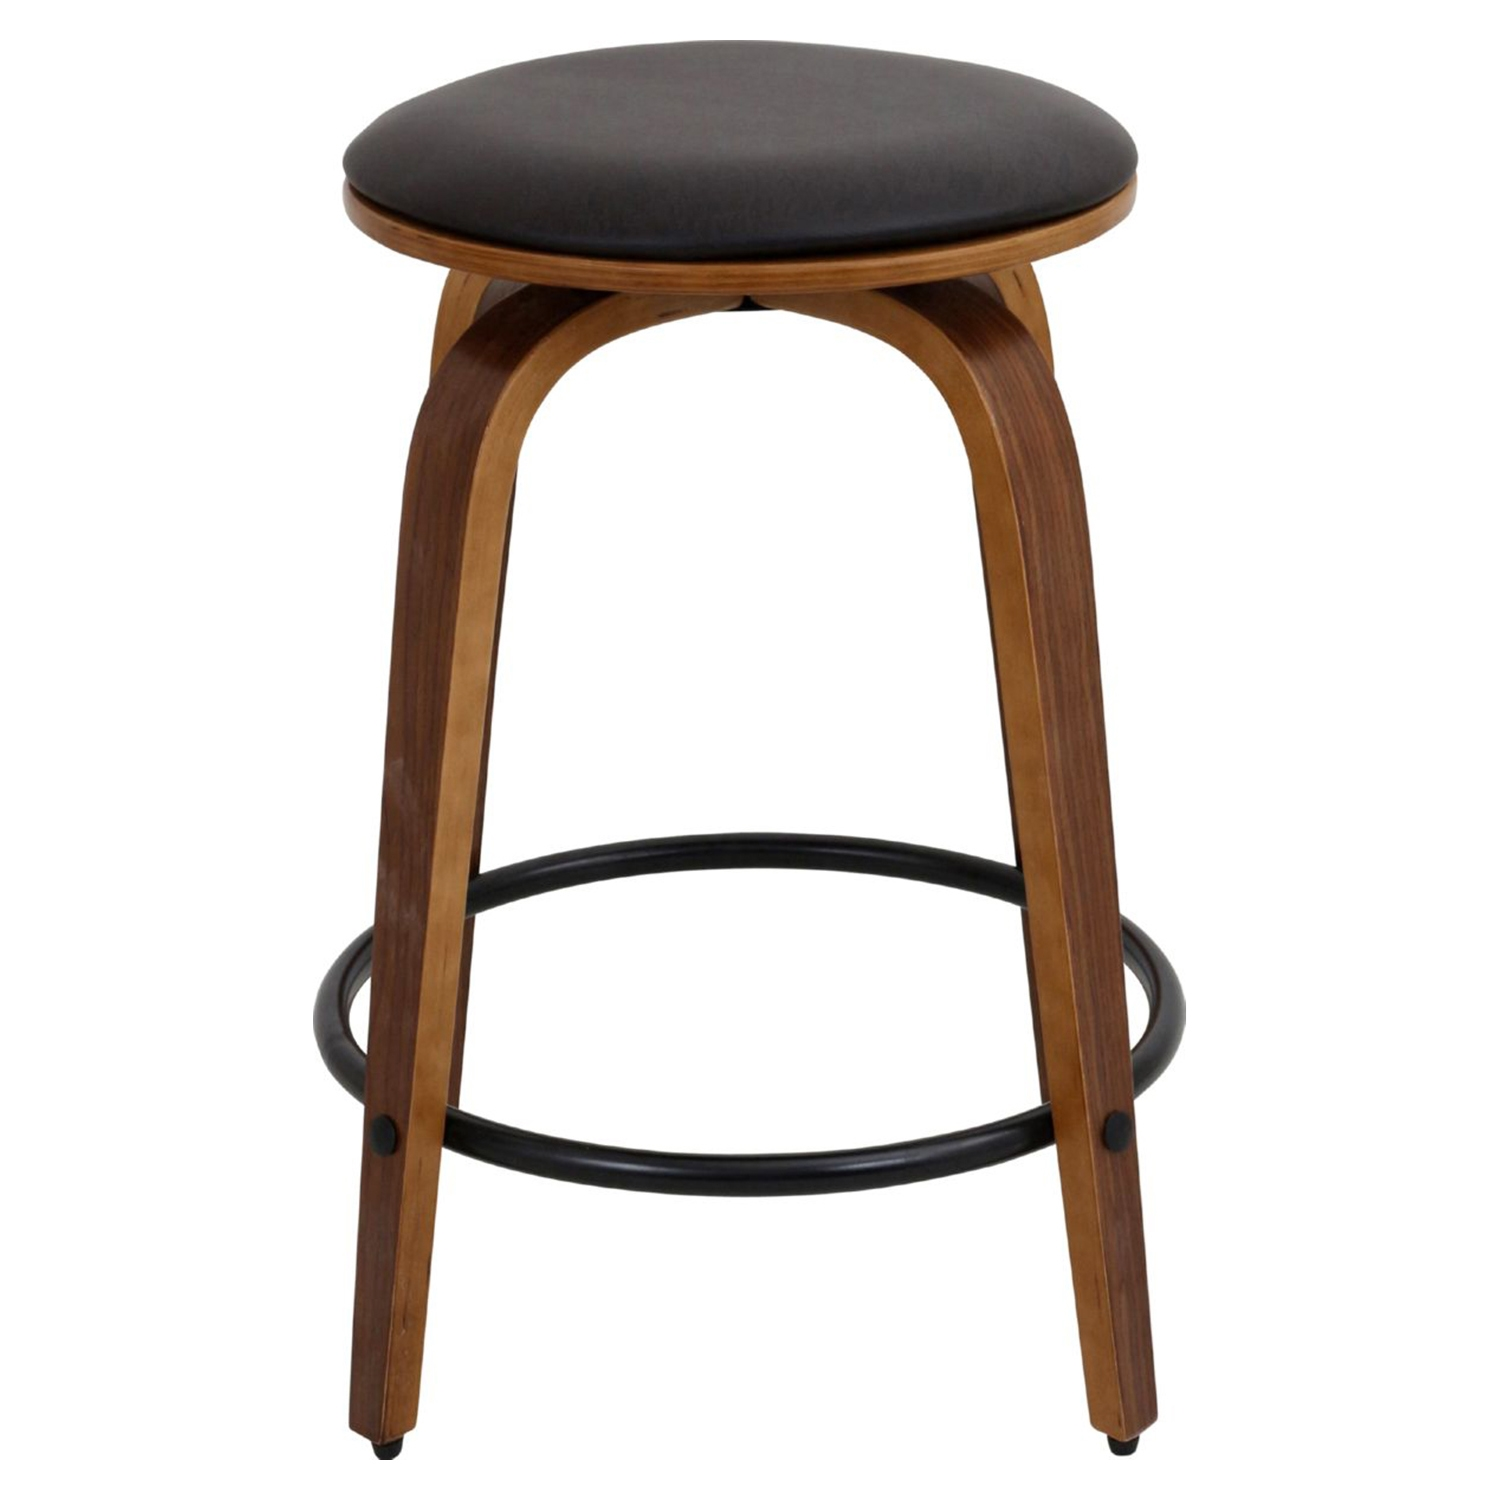 Porto Counter Stool - Swivel, Walnut, Brown (Set of 2) - LMS-CS-PRT-WL-BN2